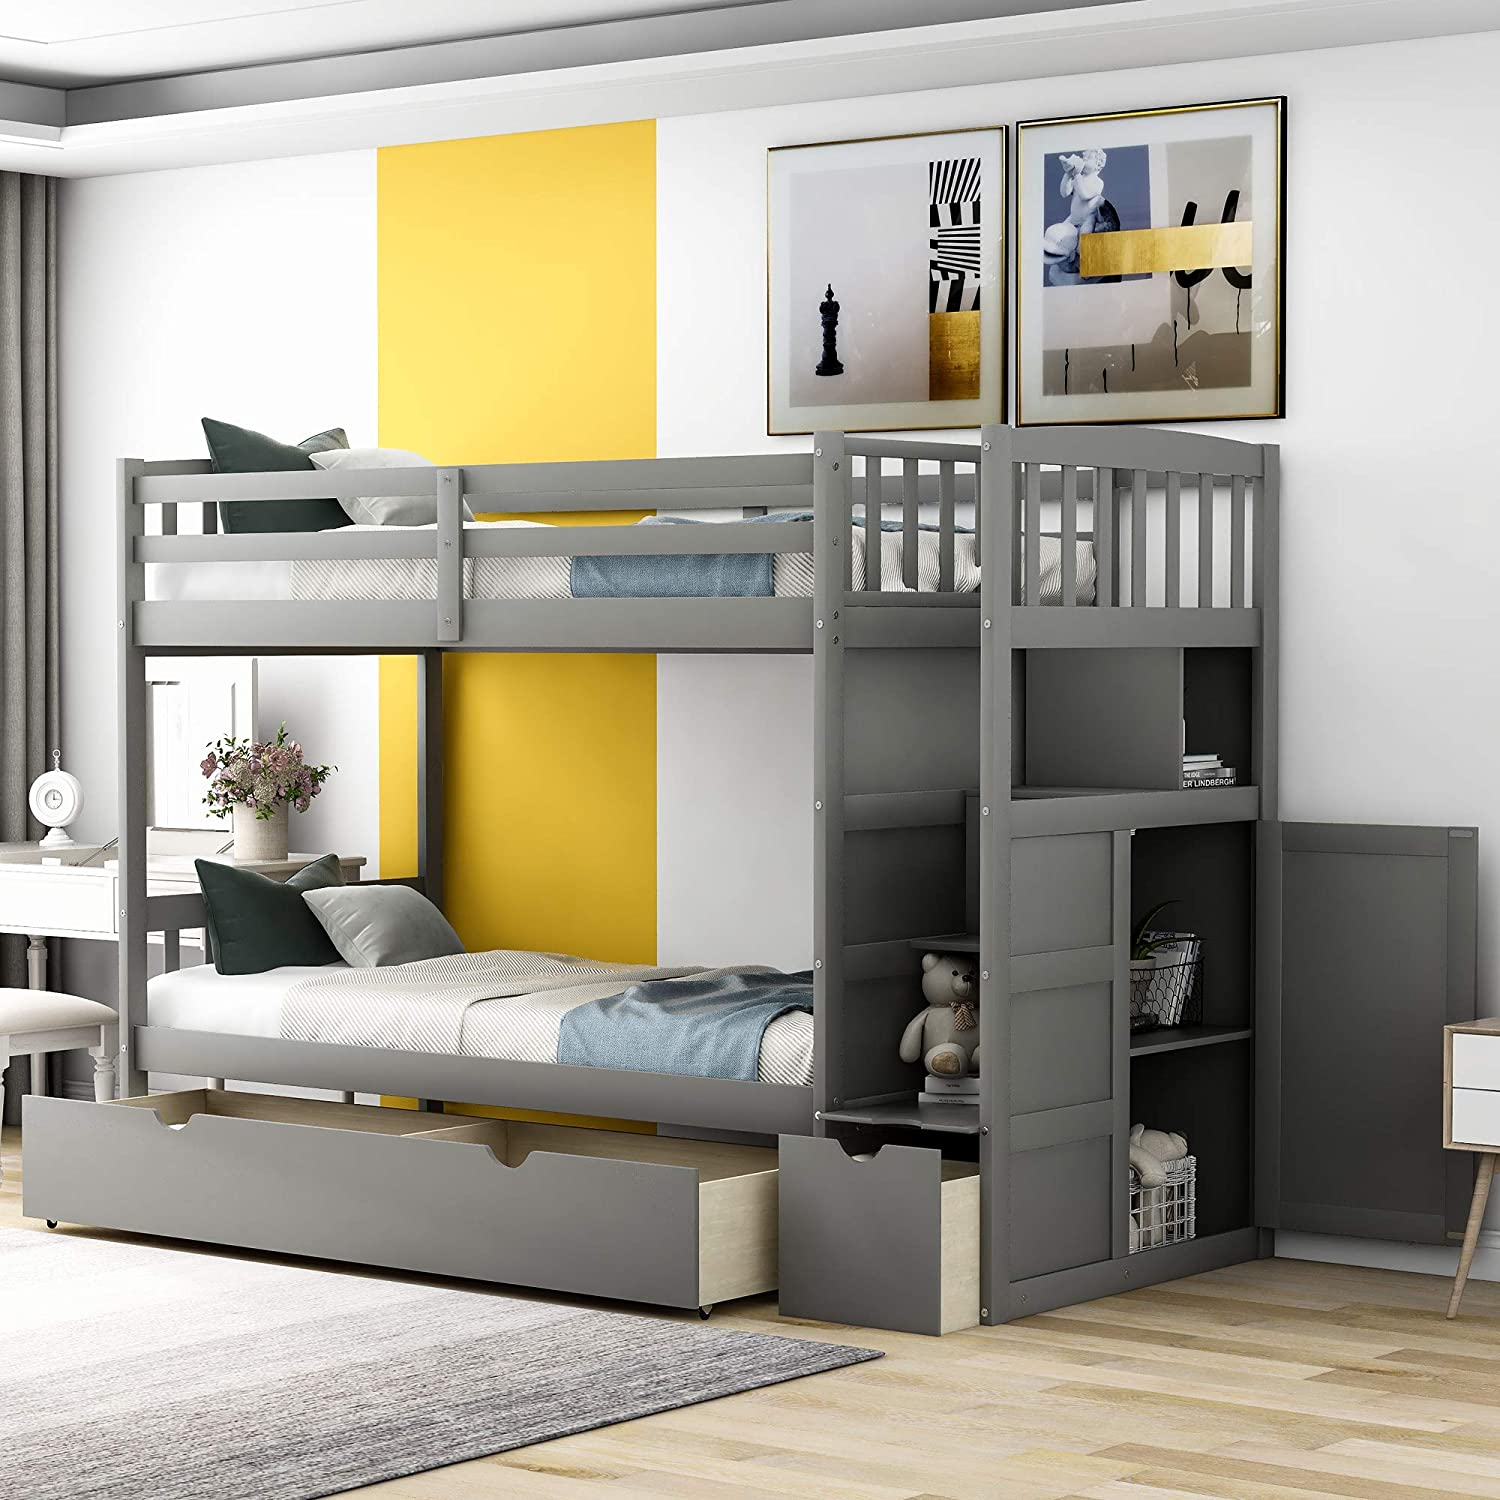 22+ Convertible Bunk Beds Pictures